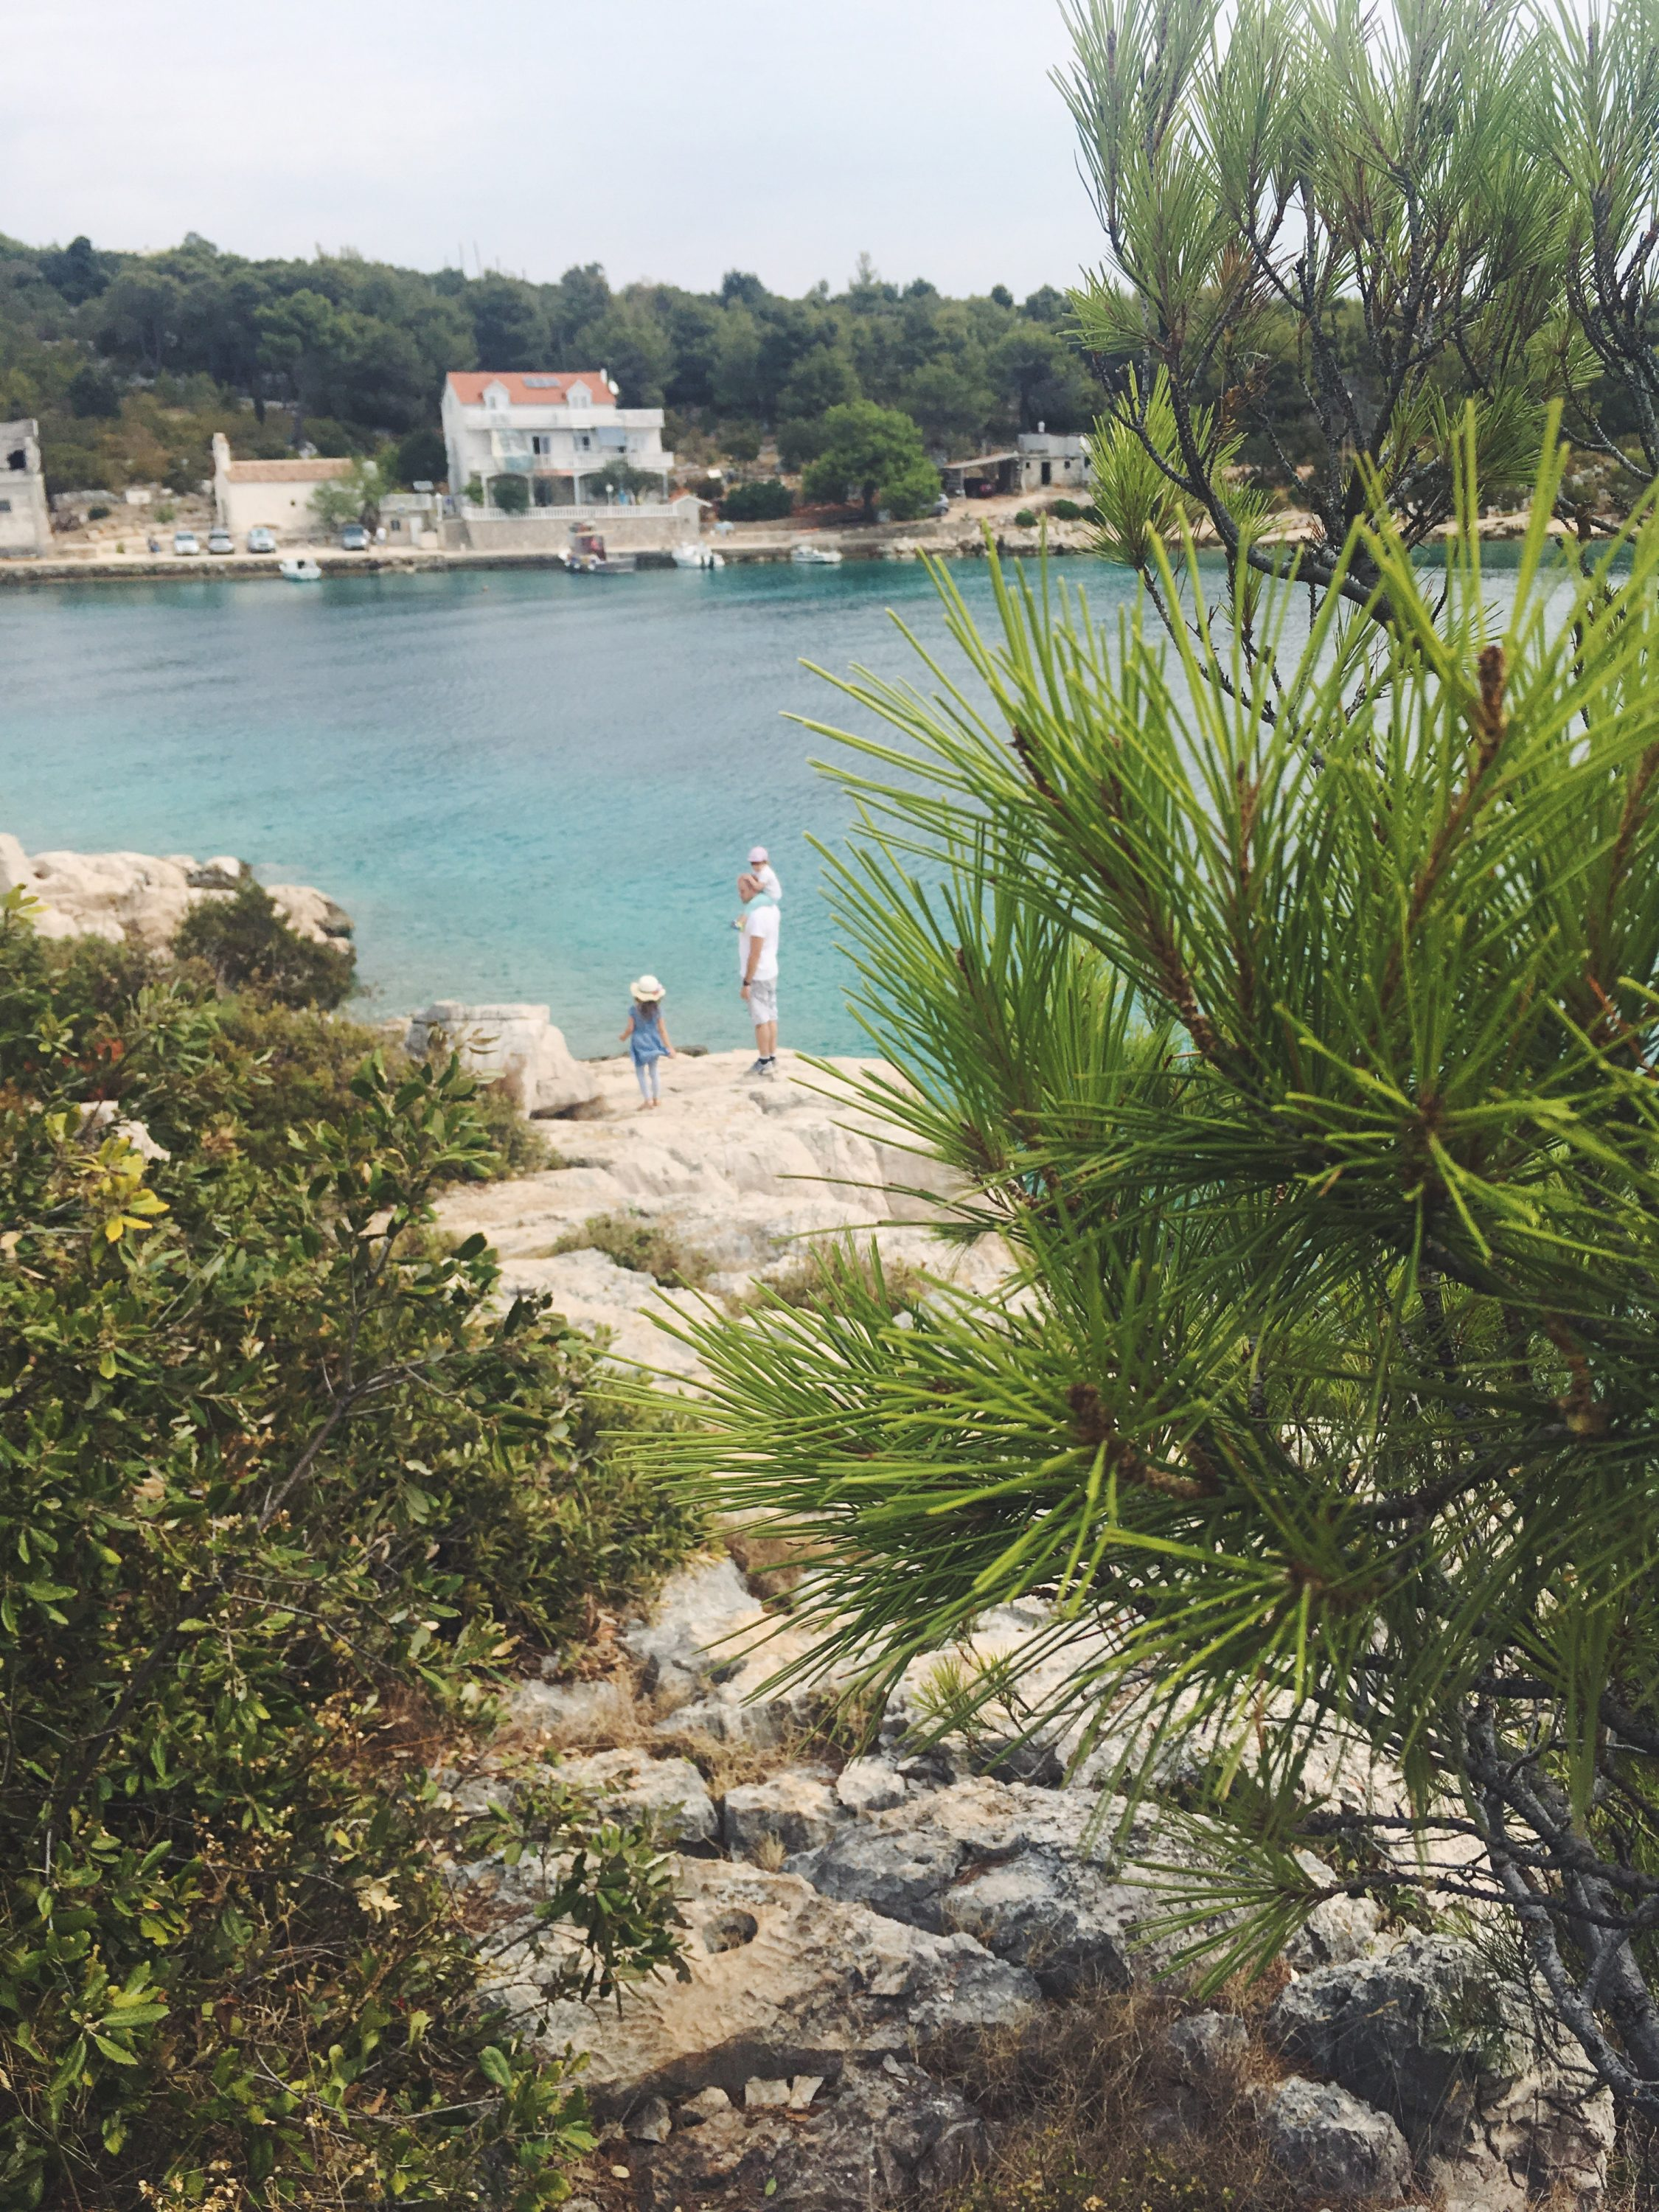 Murter Island Croatia full of life free spirit nature mom blogger jezera tisno happiness mama blogerica traveling kids lifestyle sea adriatic jadransko more more less ines blogger travel boat summer adventure murtar